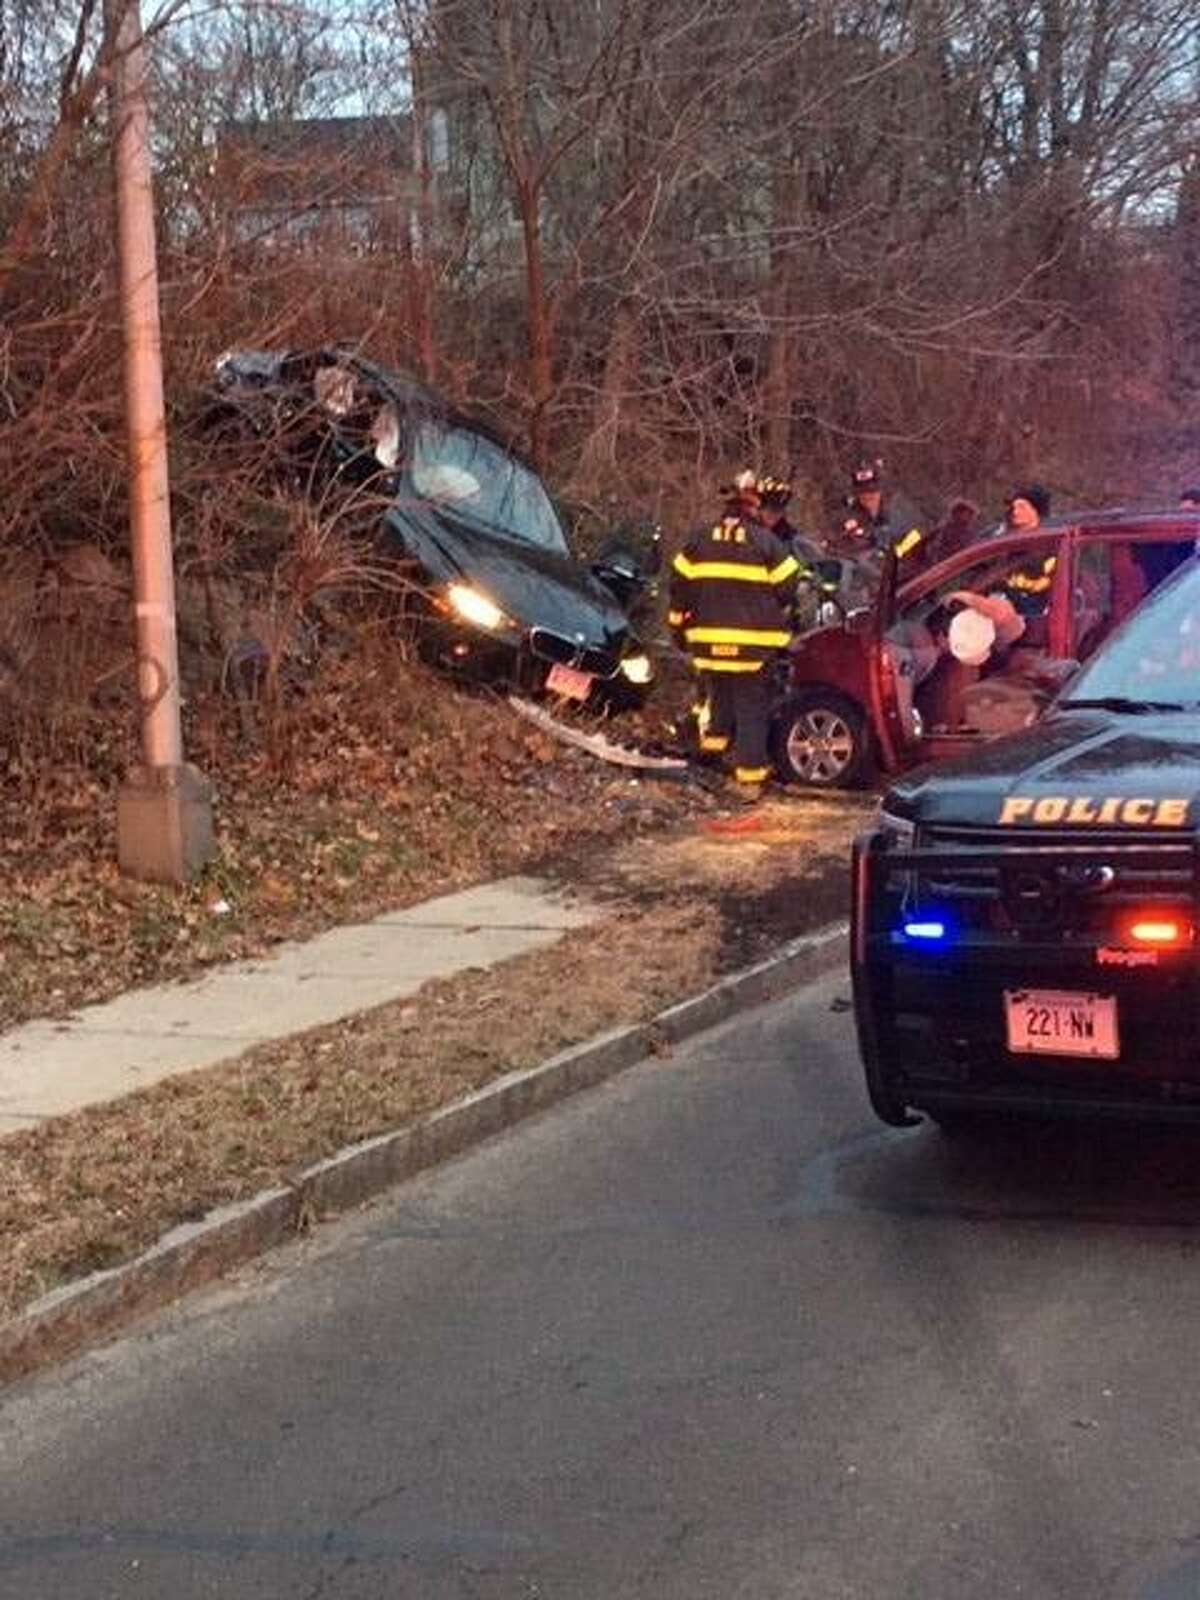 Firefighters work the scene of a serious accident on Martin Luther King Drive.